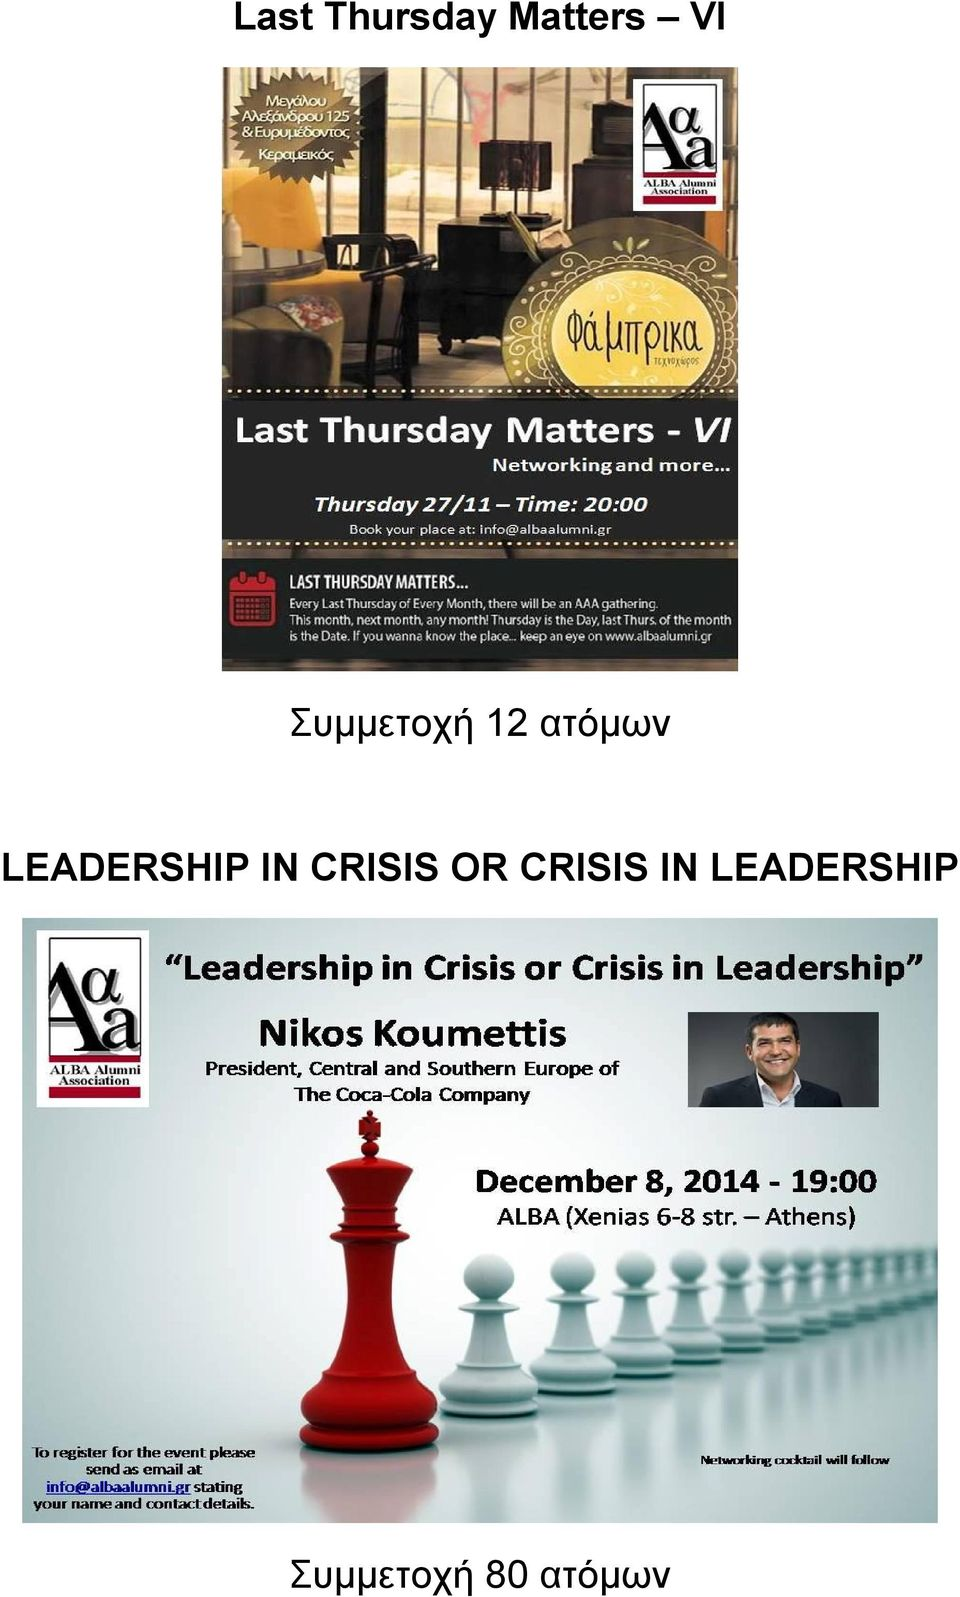 LEADERSHIP IN CRISIS OR